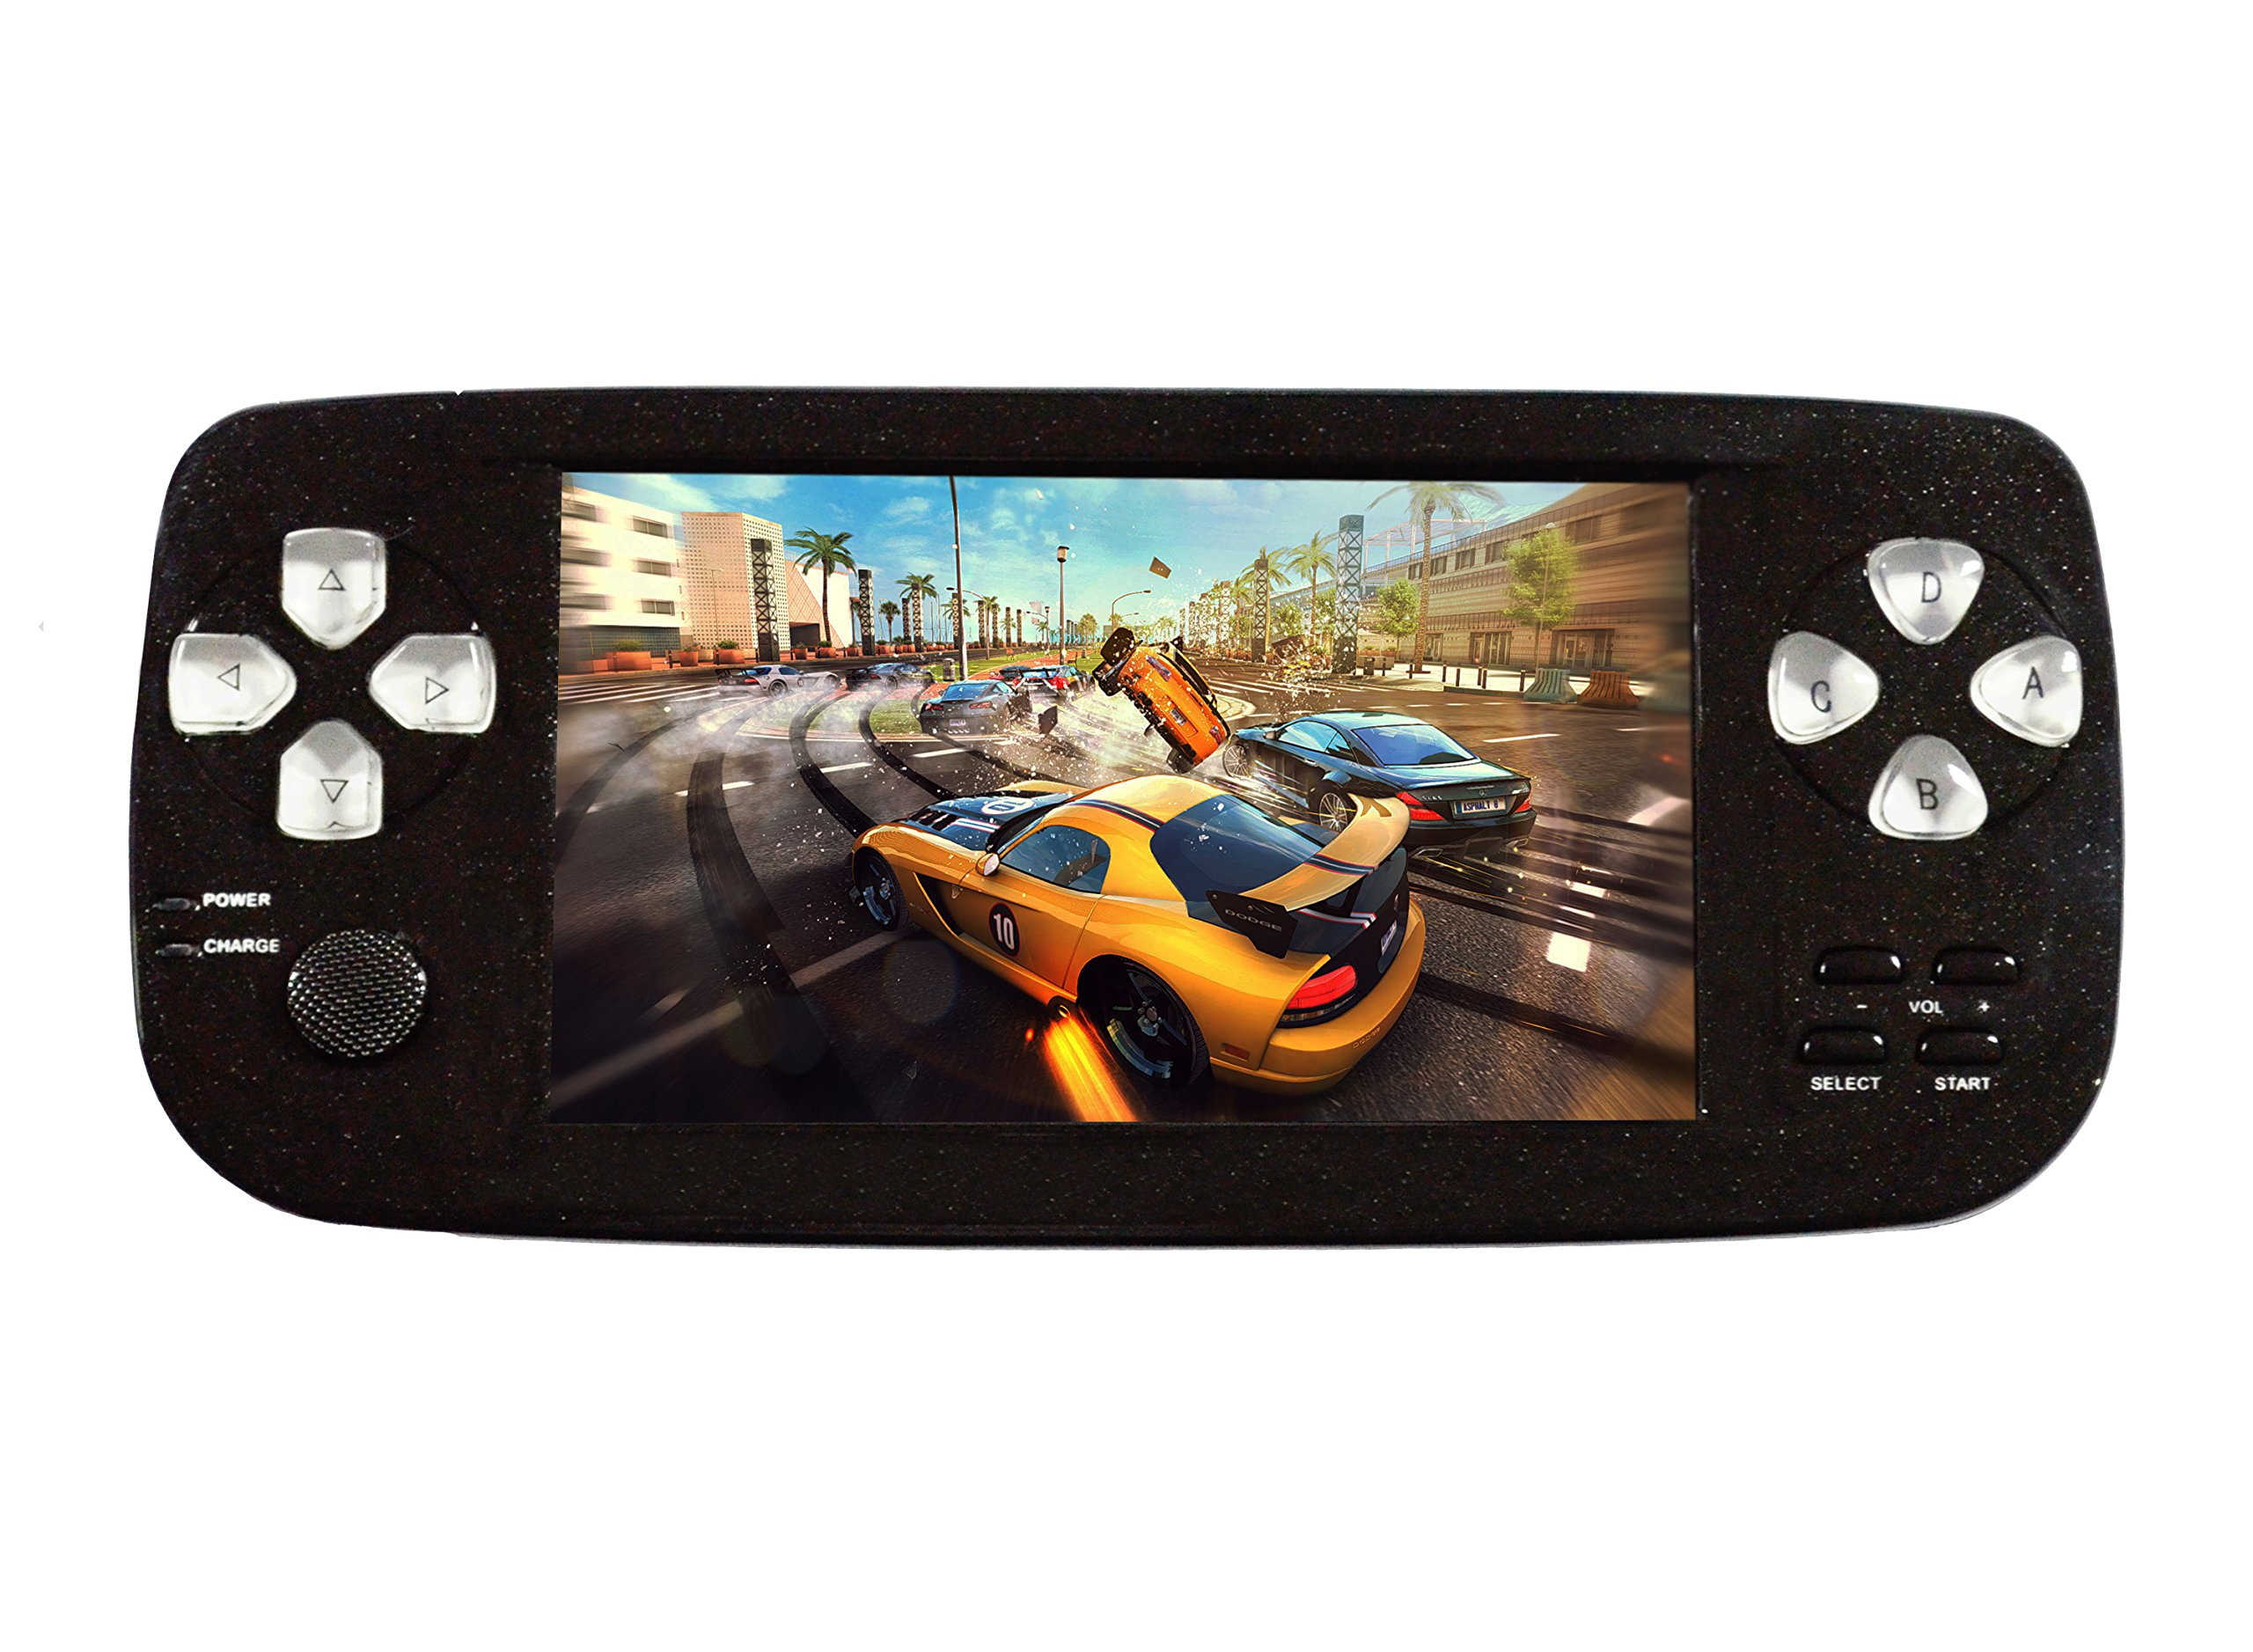 Handheld Game Console , Portable Video Game Console 4.3 Inch Screen 653 Classic Games , Birthday Present for Children - Black